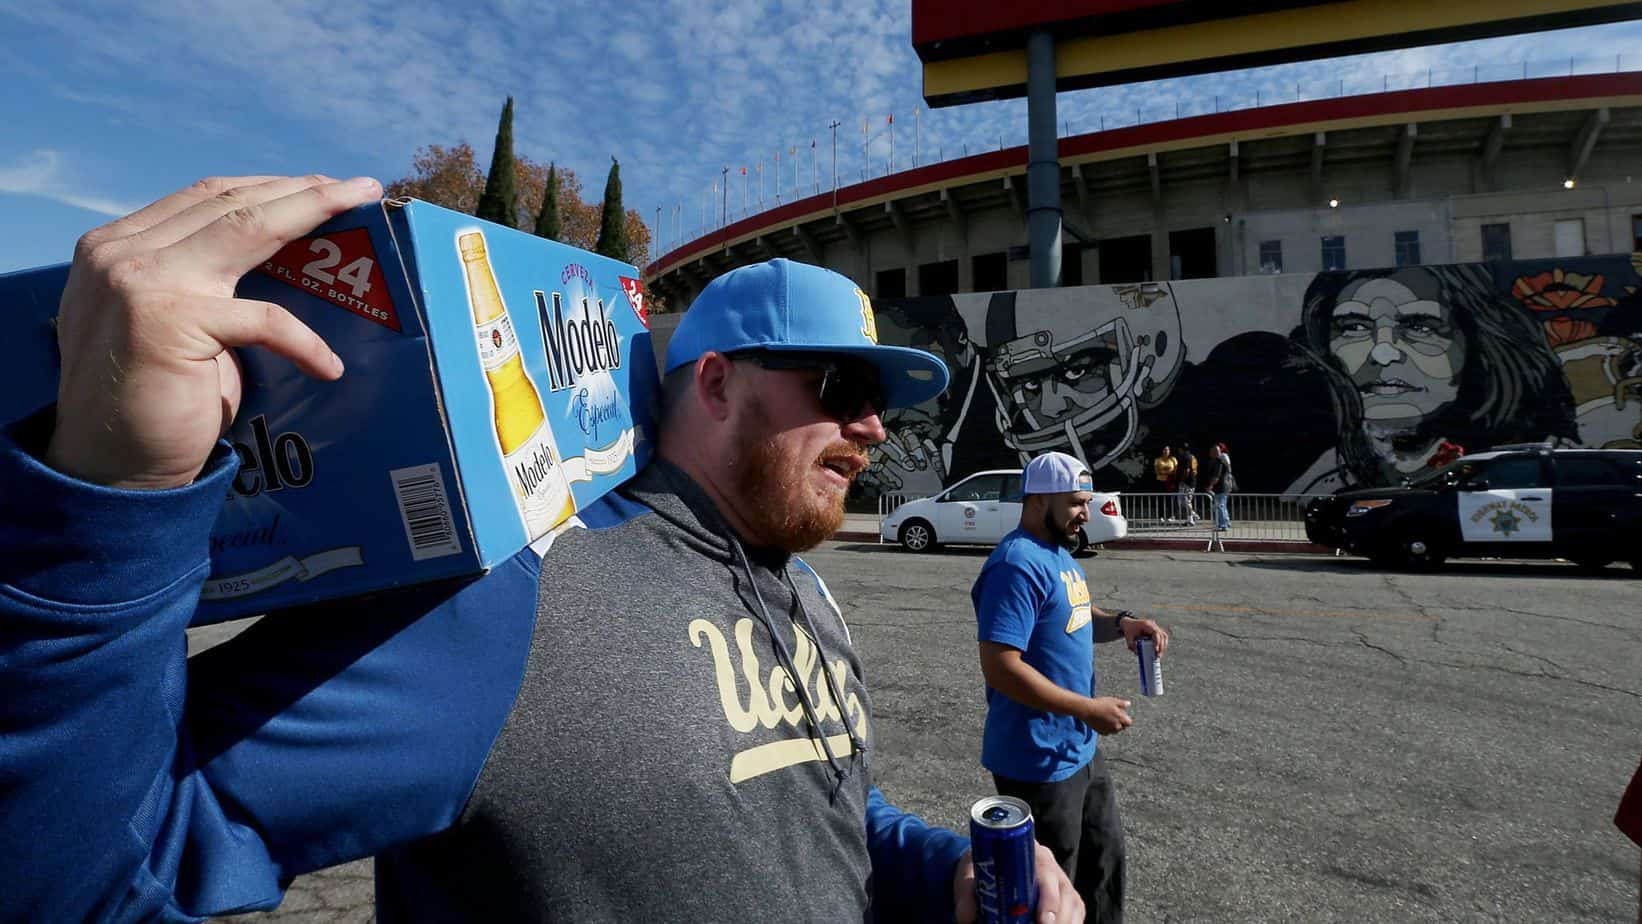 UCLA Fans Tailgating At The RoseBowl